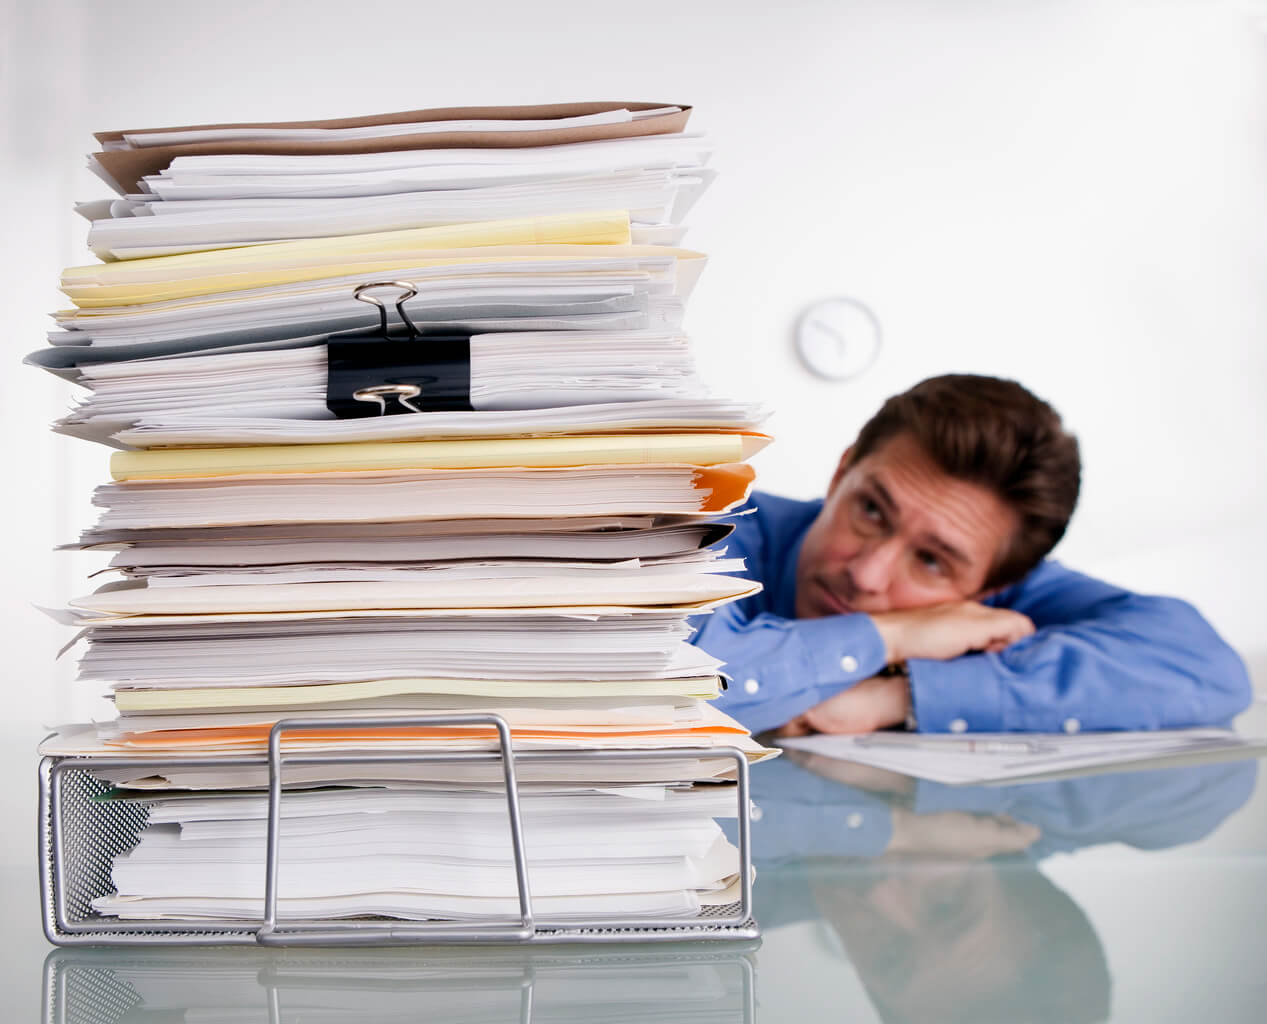 Overworked person leaning on desk buried in papers